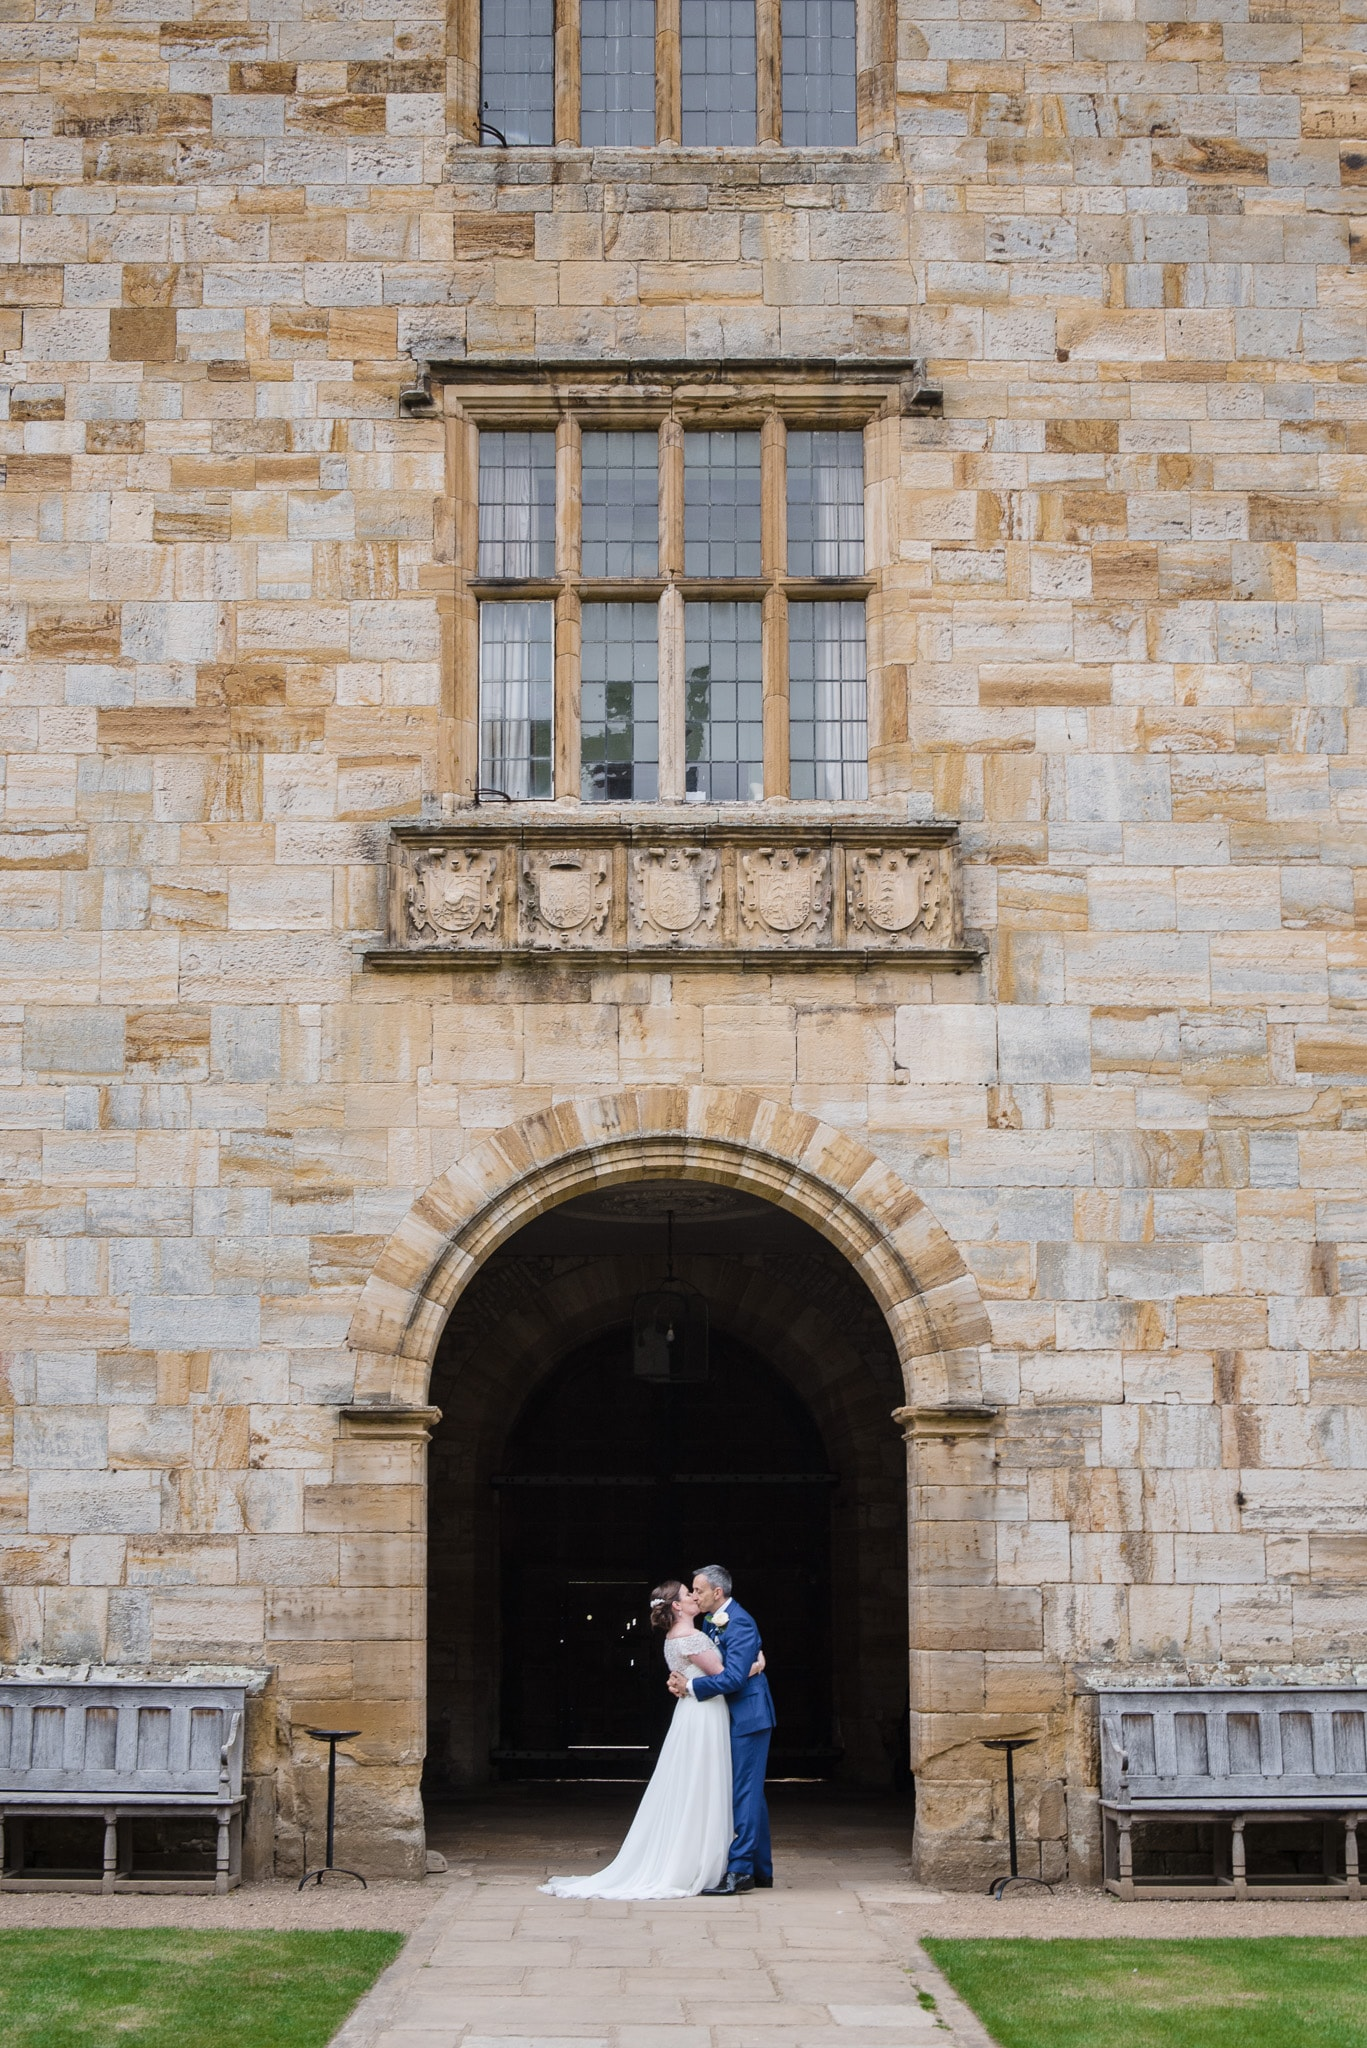 Summer Wedding at Penshurst